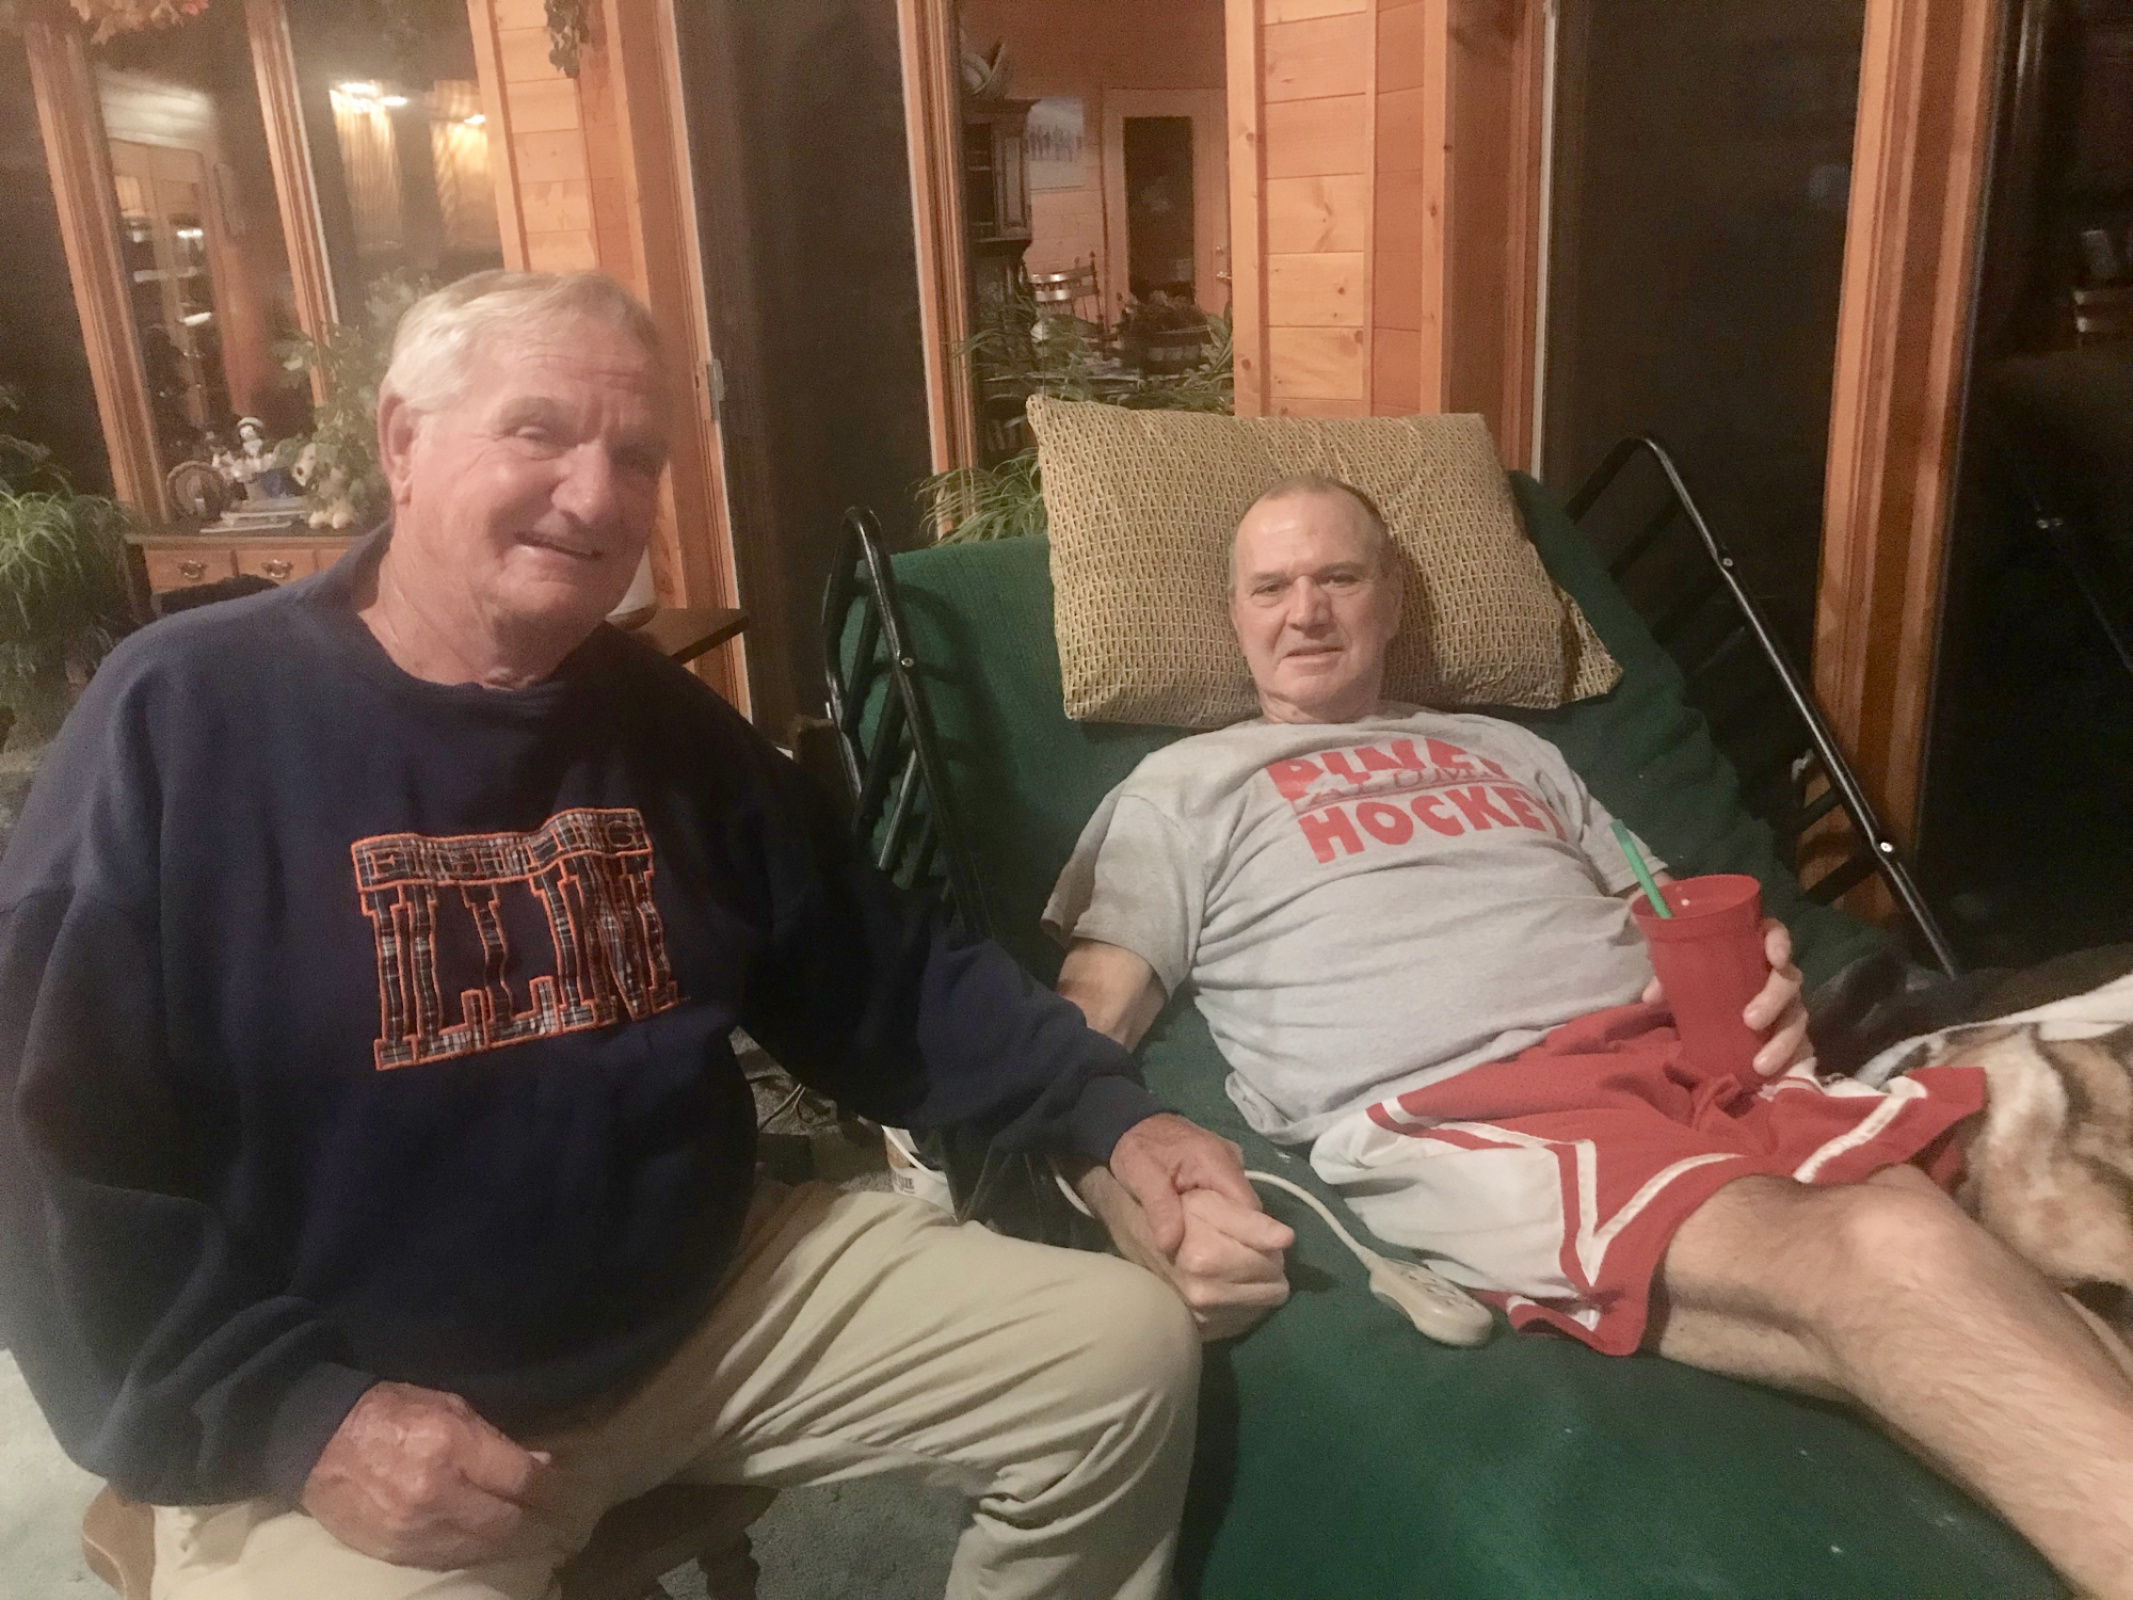 Brother Larry and Chuck share special memories